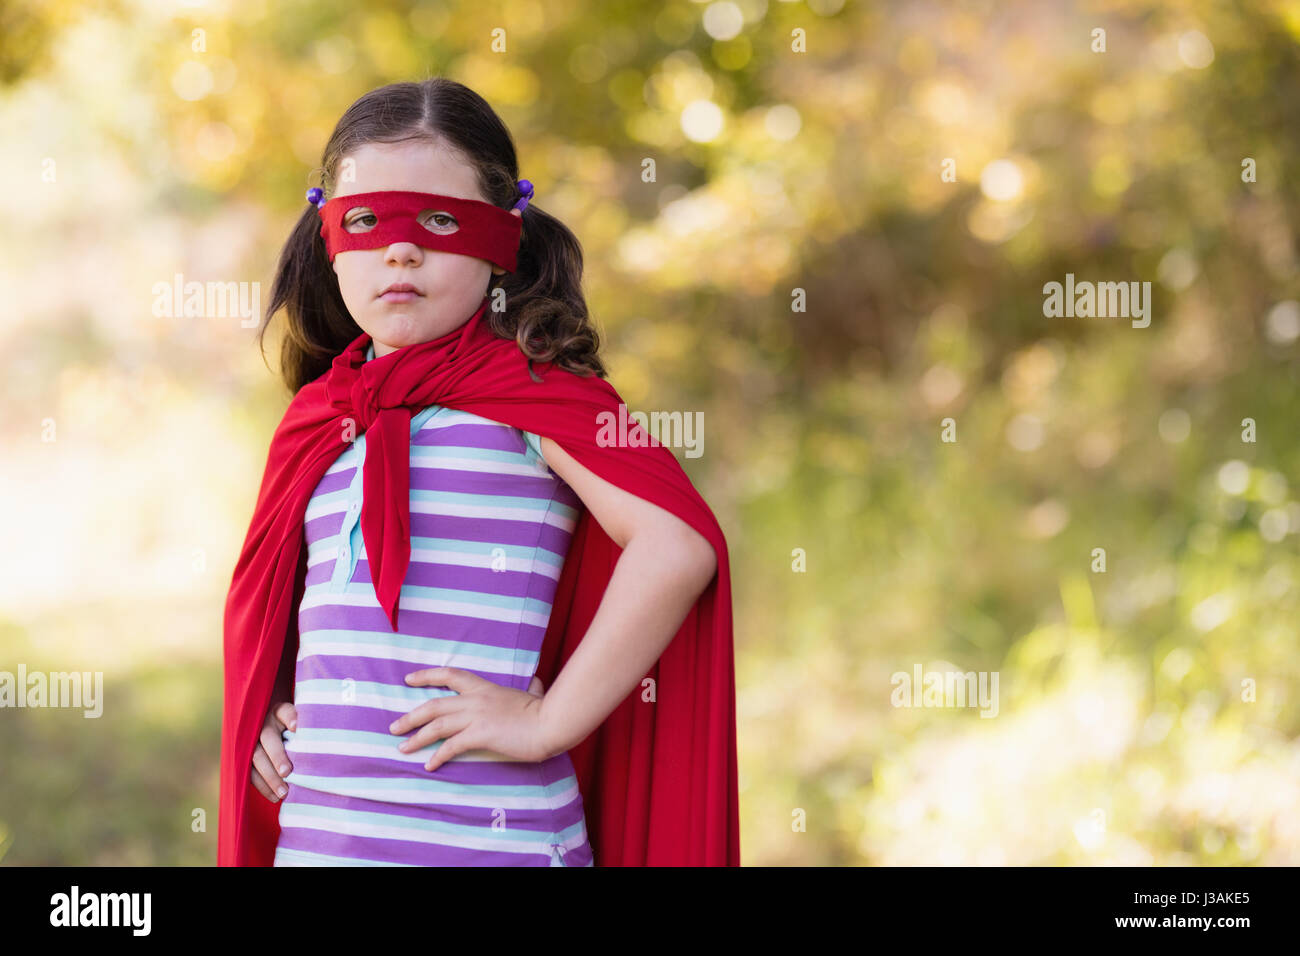 Portrait of little girl wearing superhero costume at campsite Stock Photo